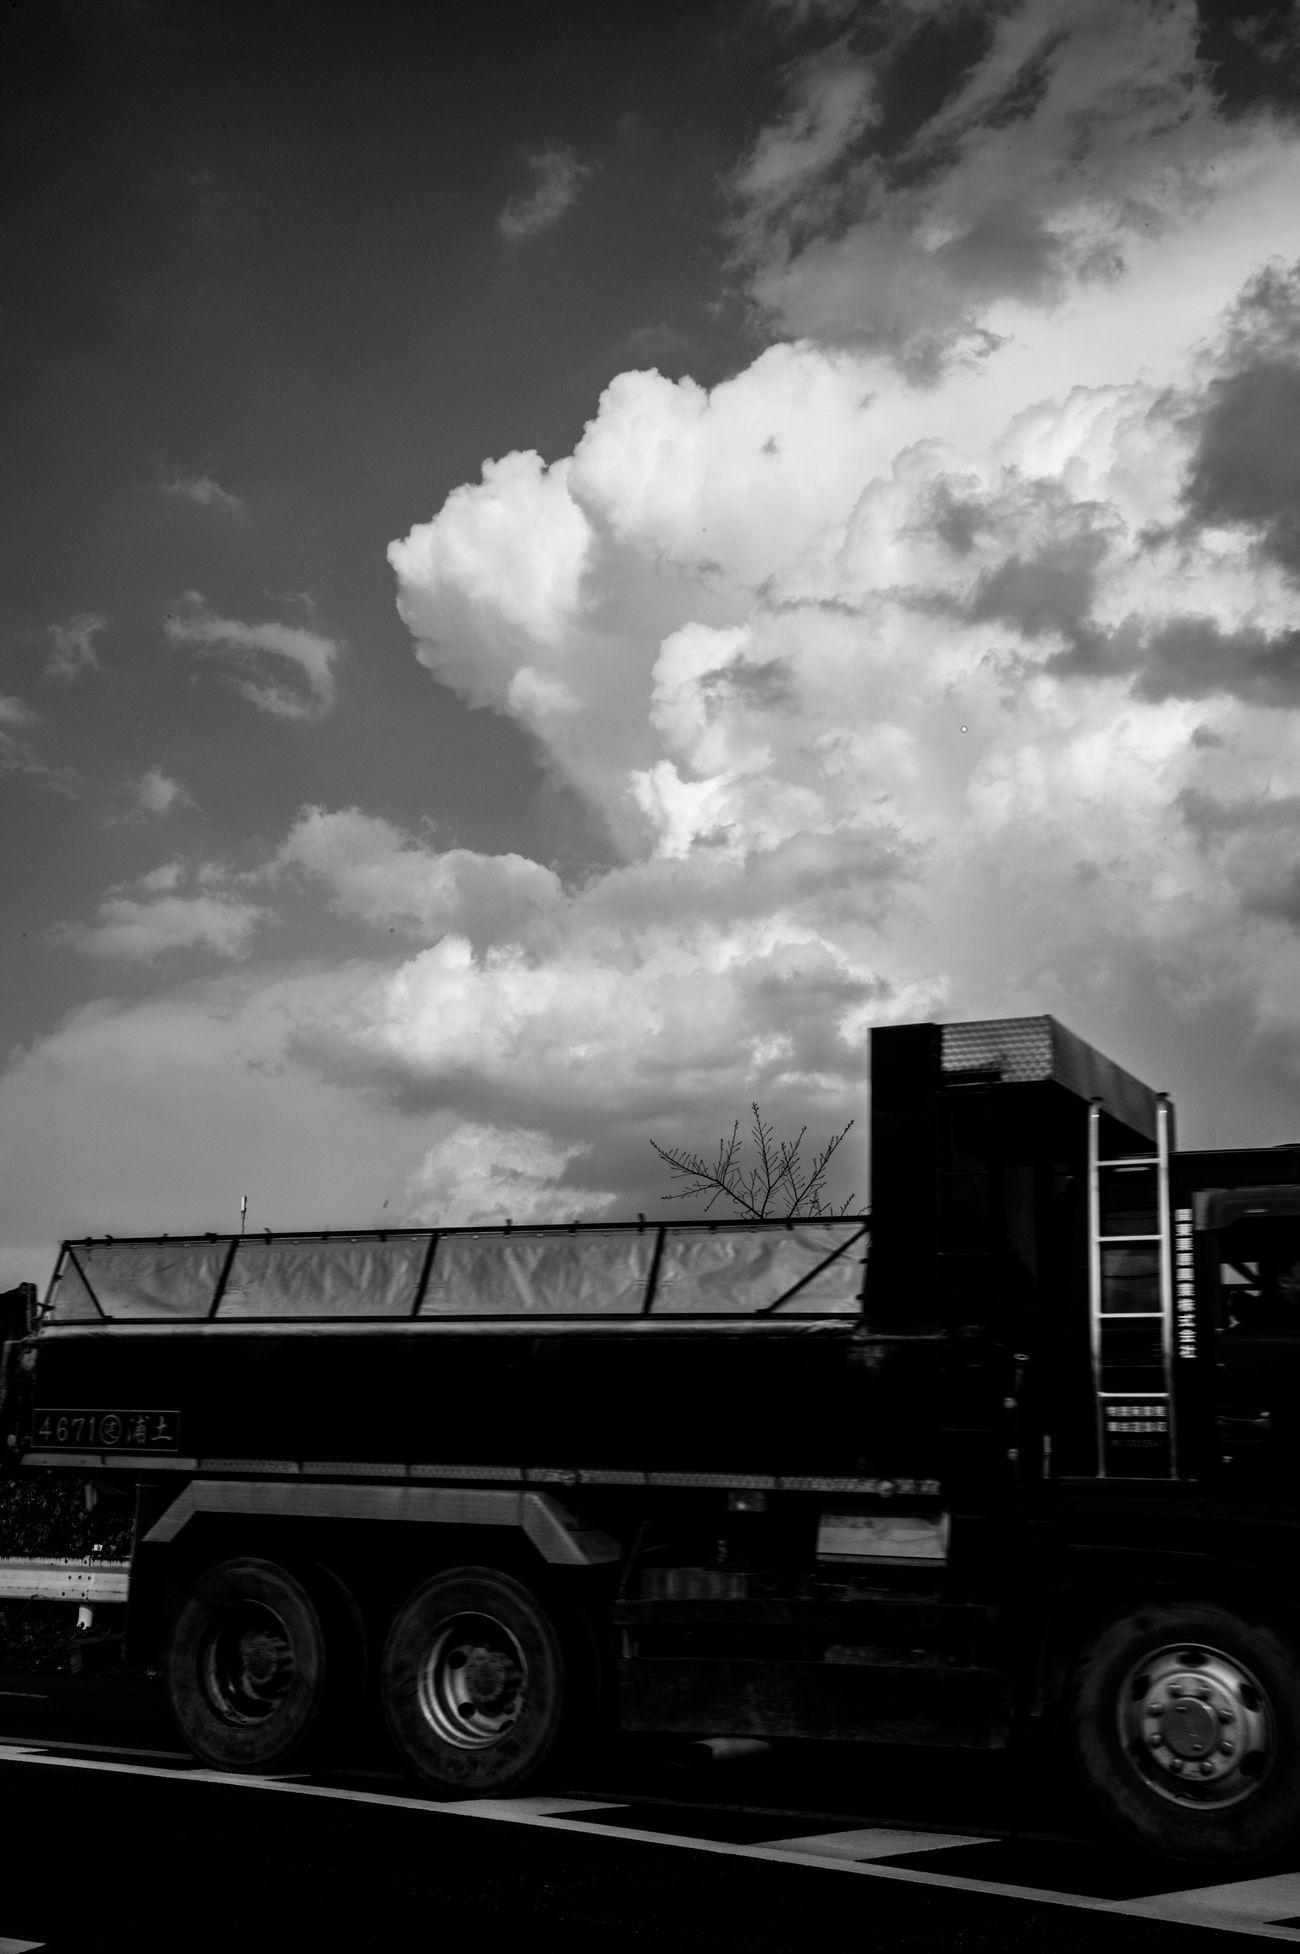 35mm Leicacamera Streetphotography Cloud - Sky Light And Shadow Street Photography EyeEm Best Shots Monochrome Monochrome Photography Blackandwhite Capture The Moment